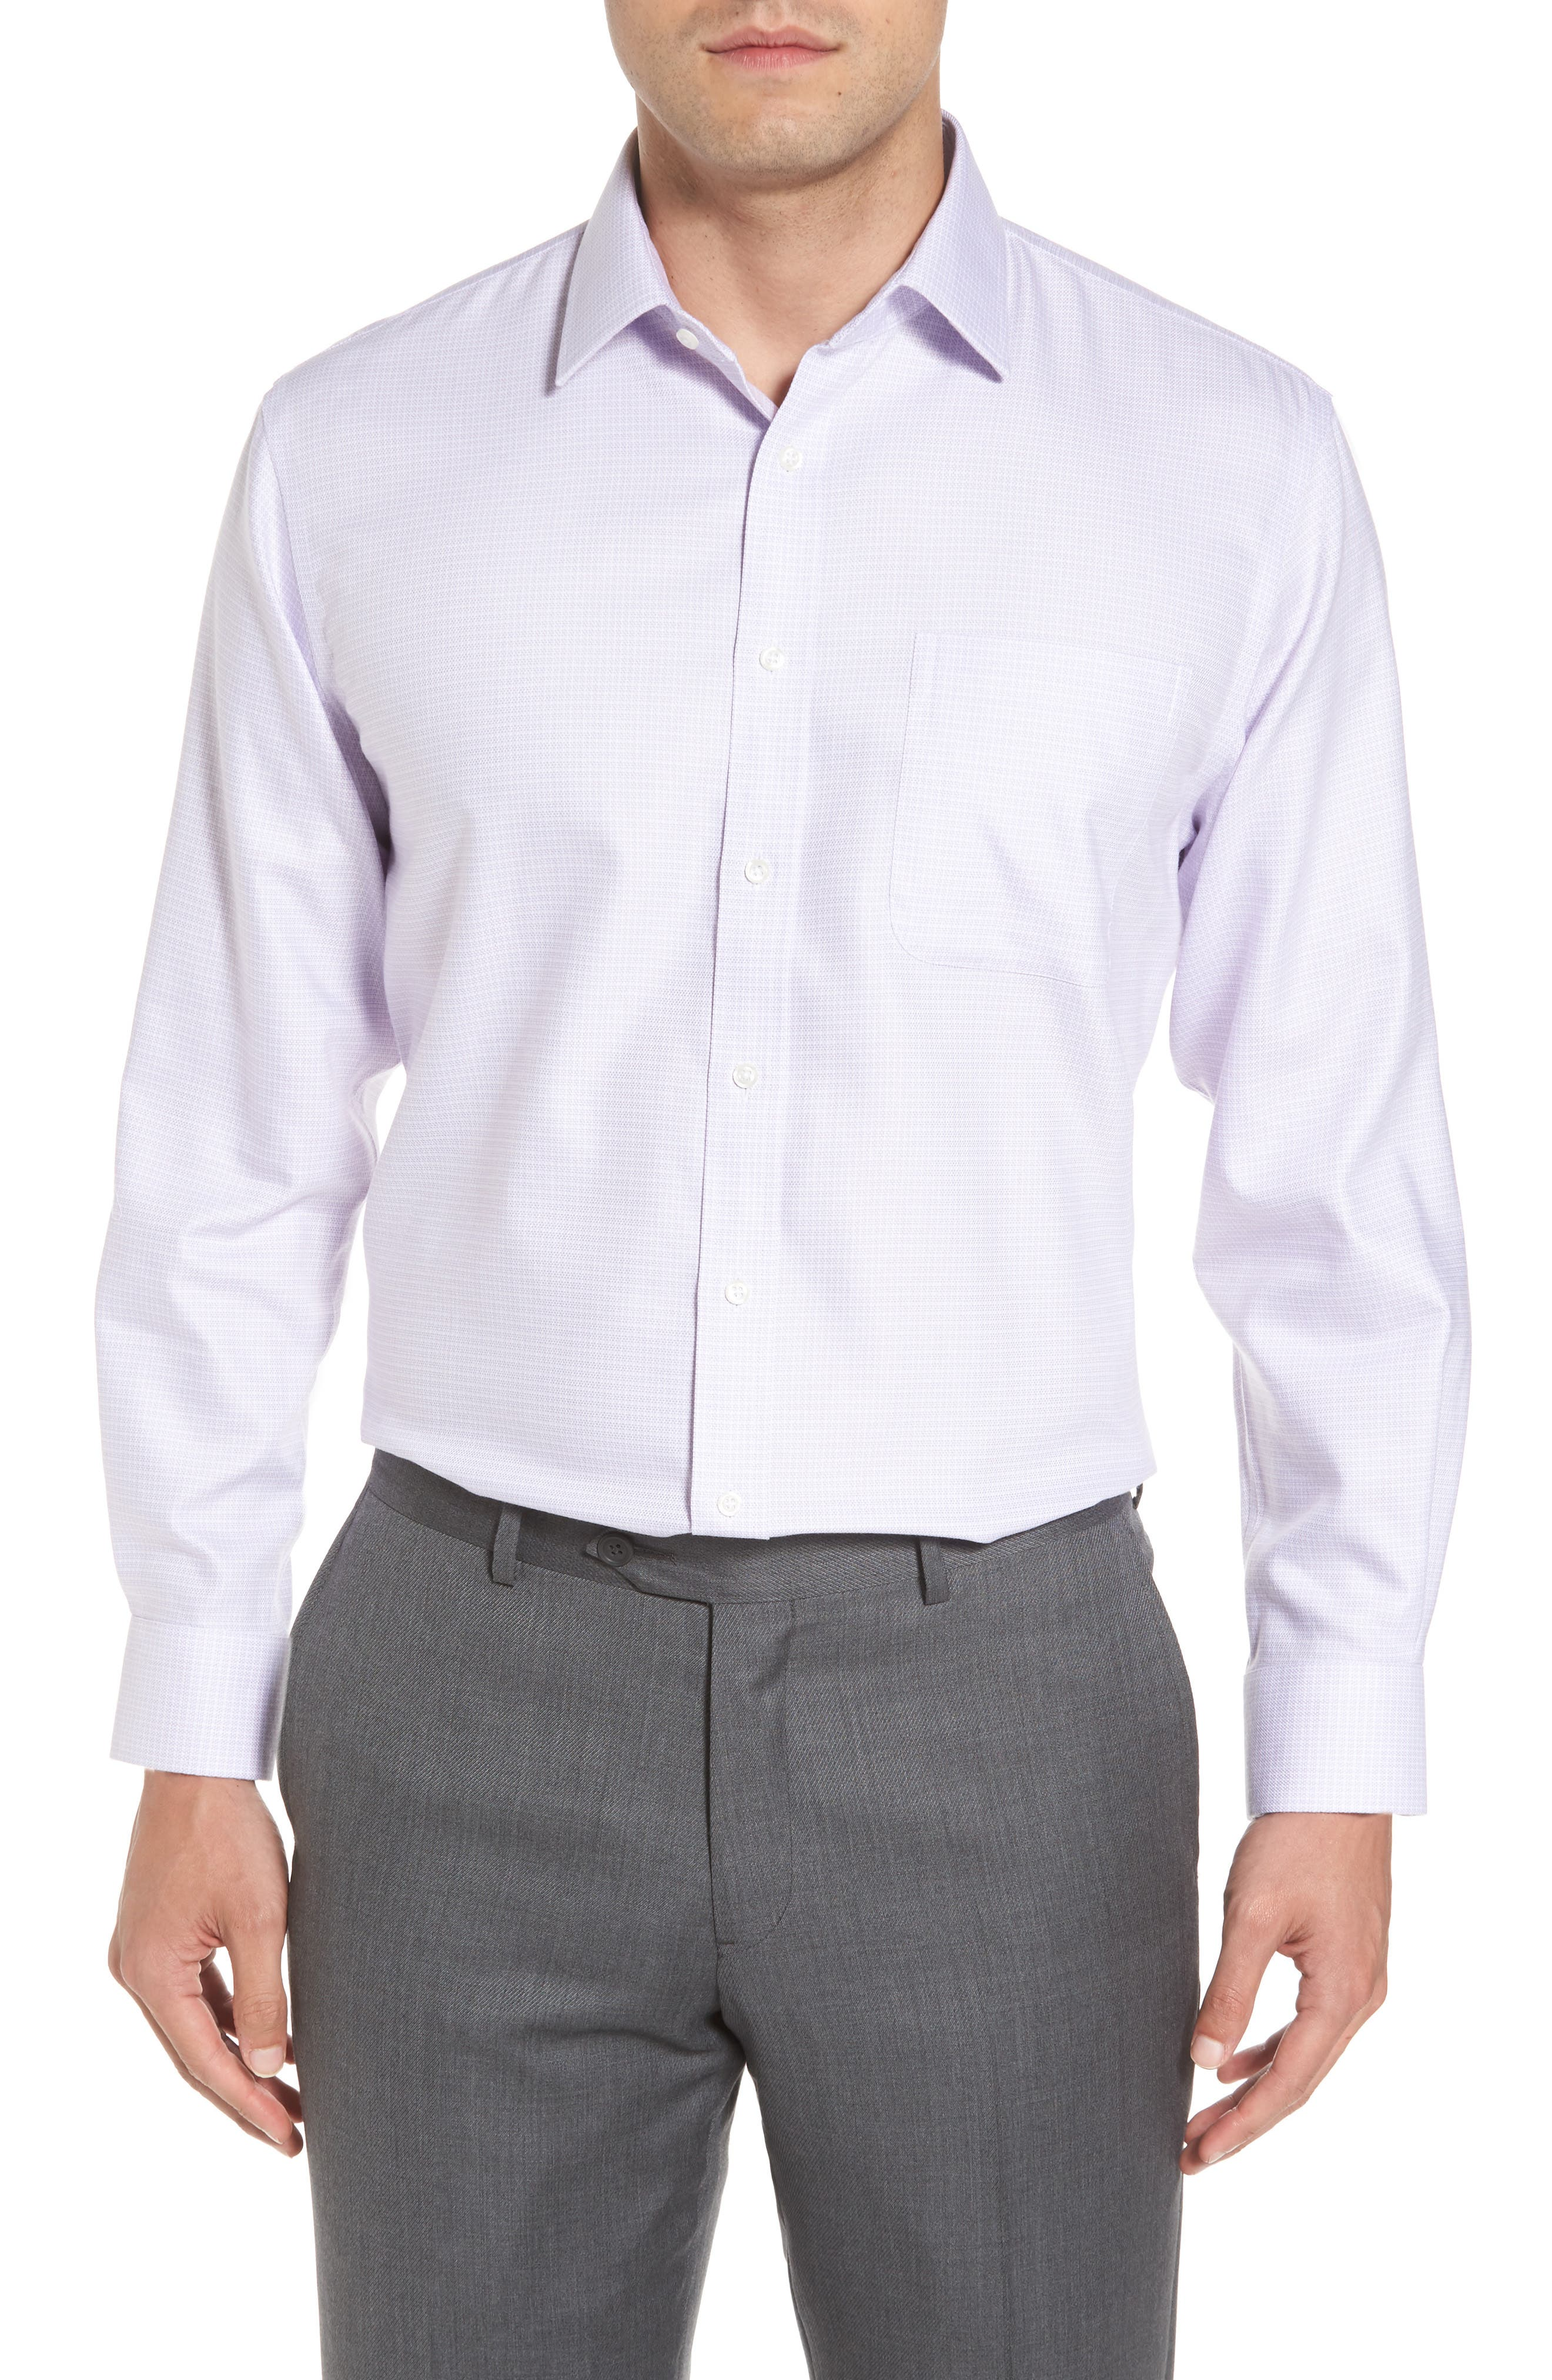 Smartcare<sup>™</sup> Traditional Fit Dress Shirt,                             Main thumbnail 1, color,                             530